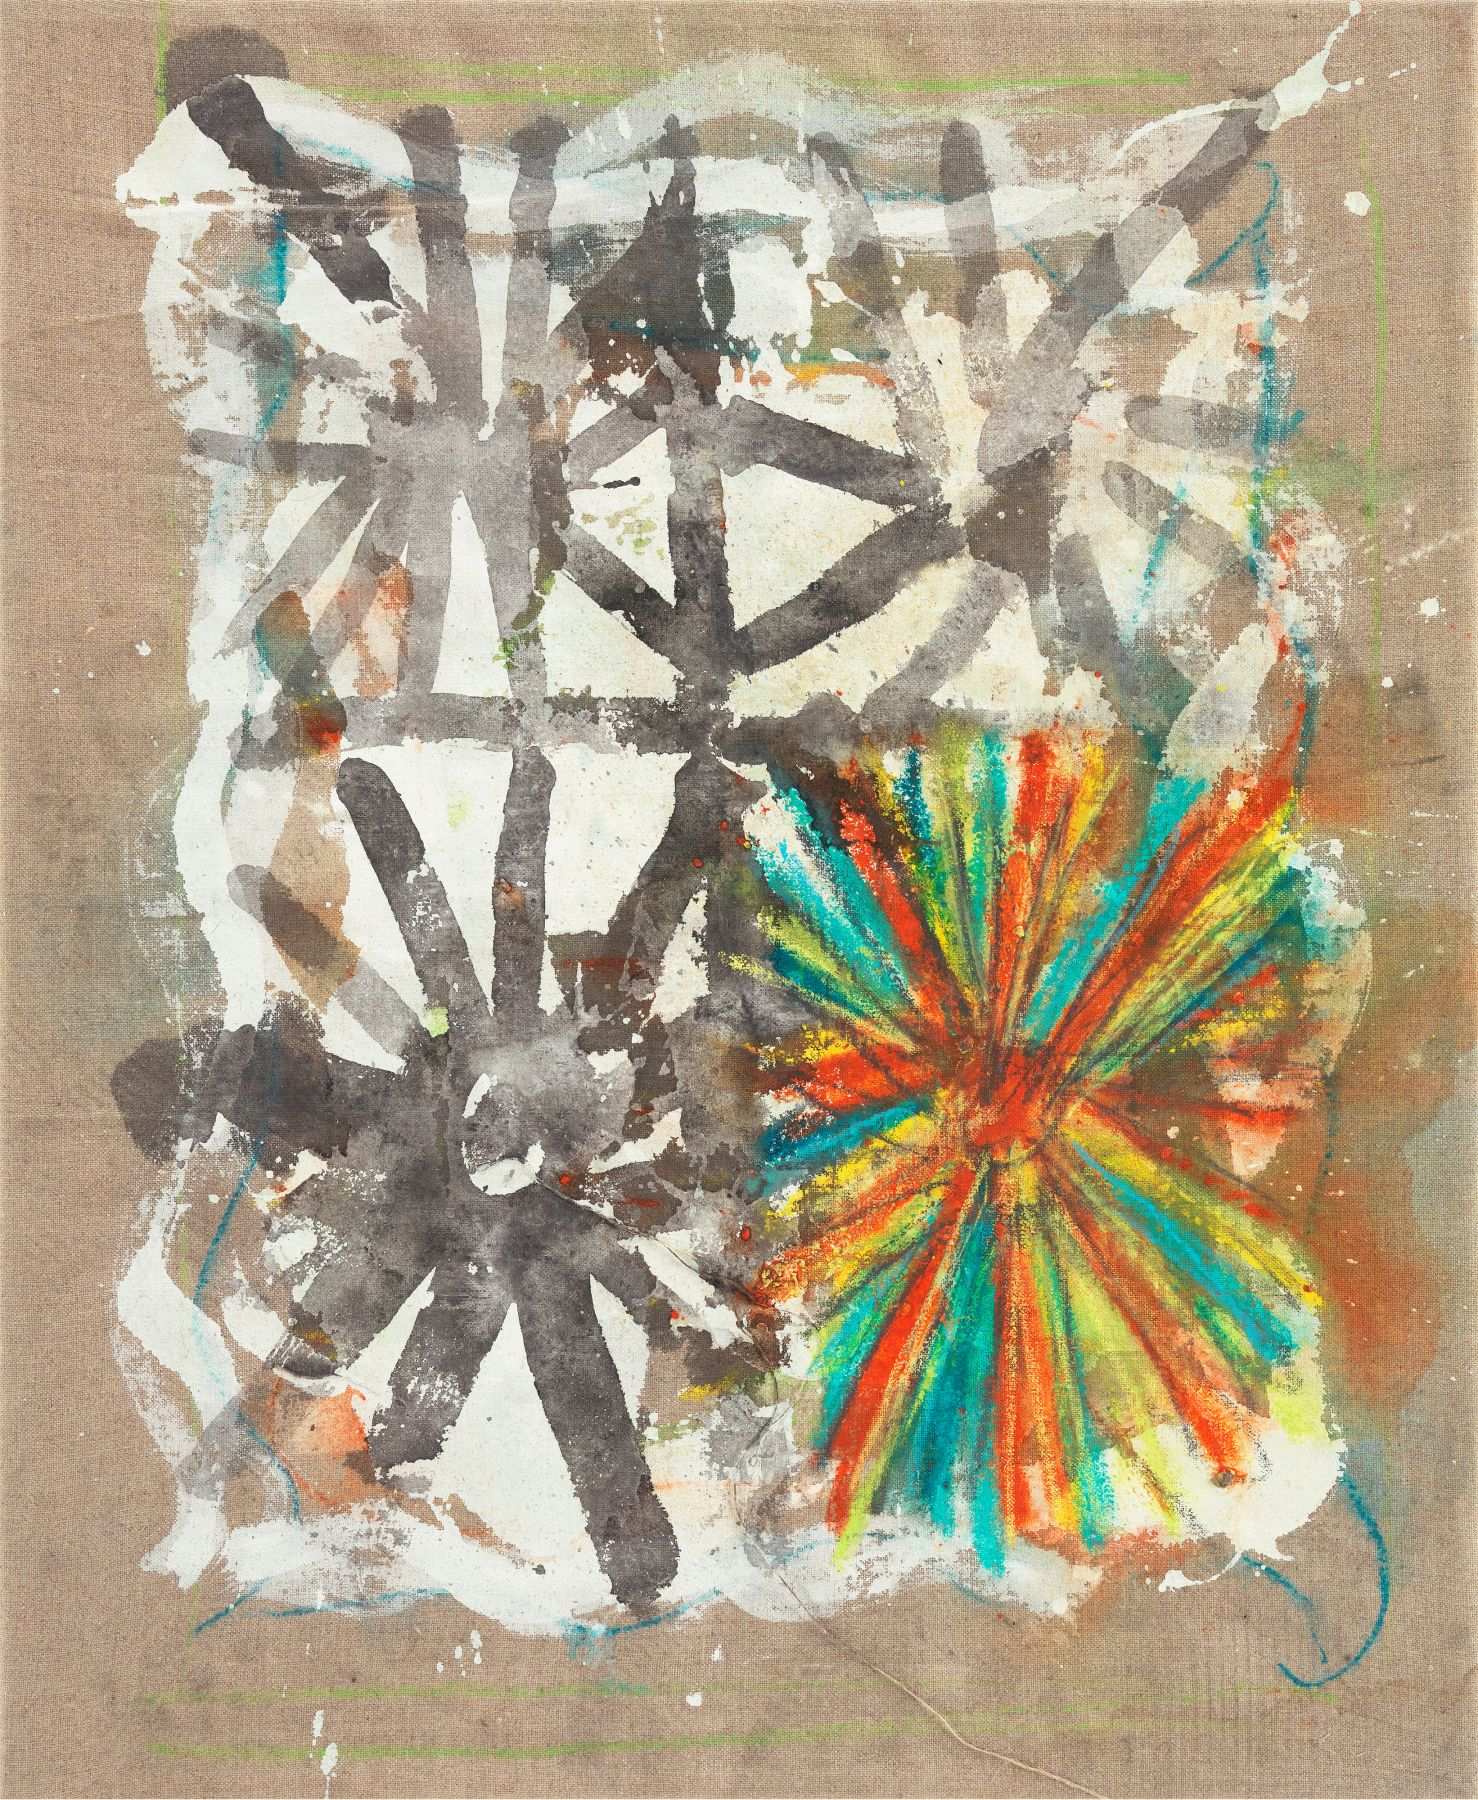 Ohne Titel, 1994, Oil, pastel and acrylic on linen